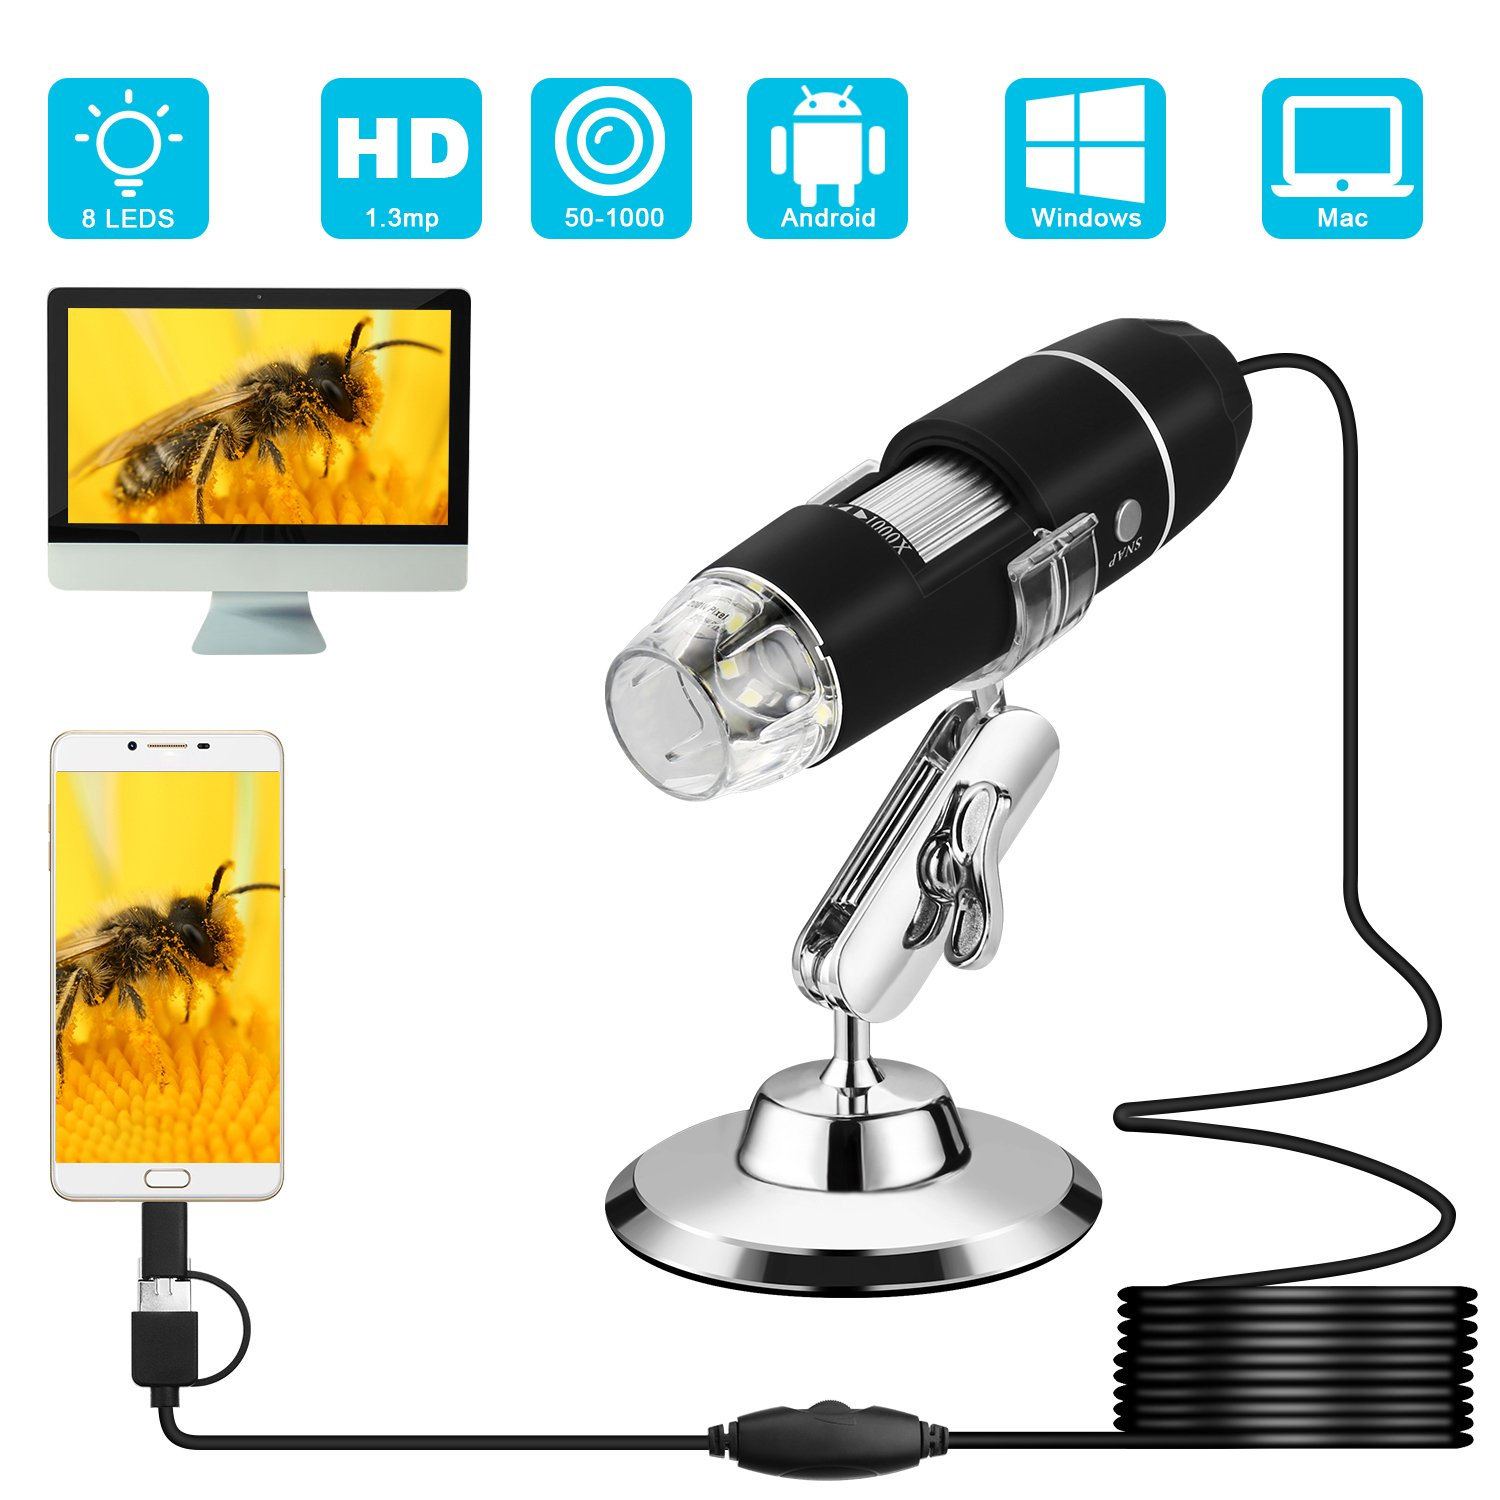 USB Microscope, VSATEN 3 In 1 Digital 50X-1000X Magnification Microscope 2.0MP Endoscope Camera with 8 Leds Light & Rotatable Stand Holder for Android Smartphone, Tablet, Windows & Macbook OS Computer